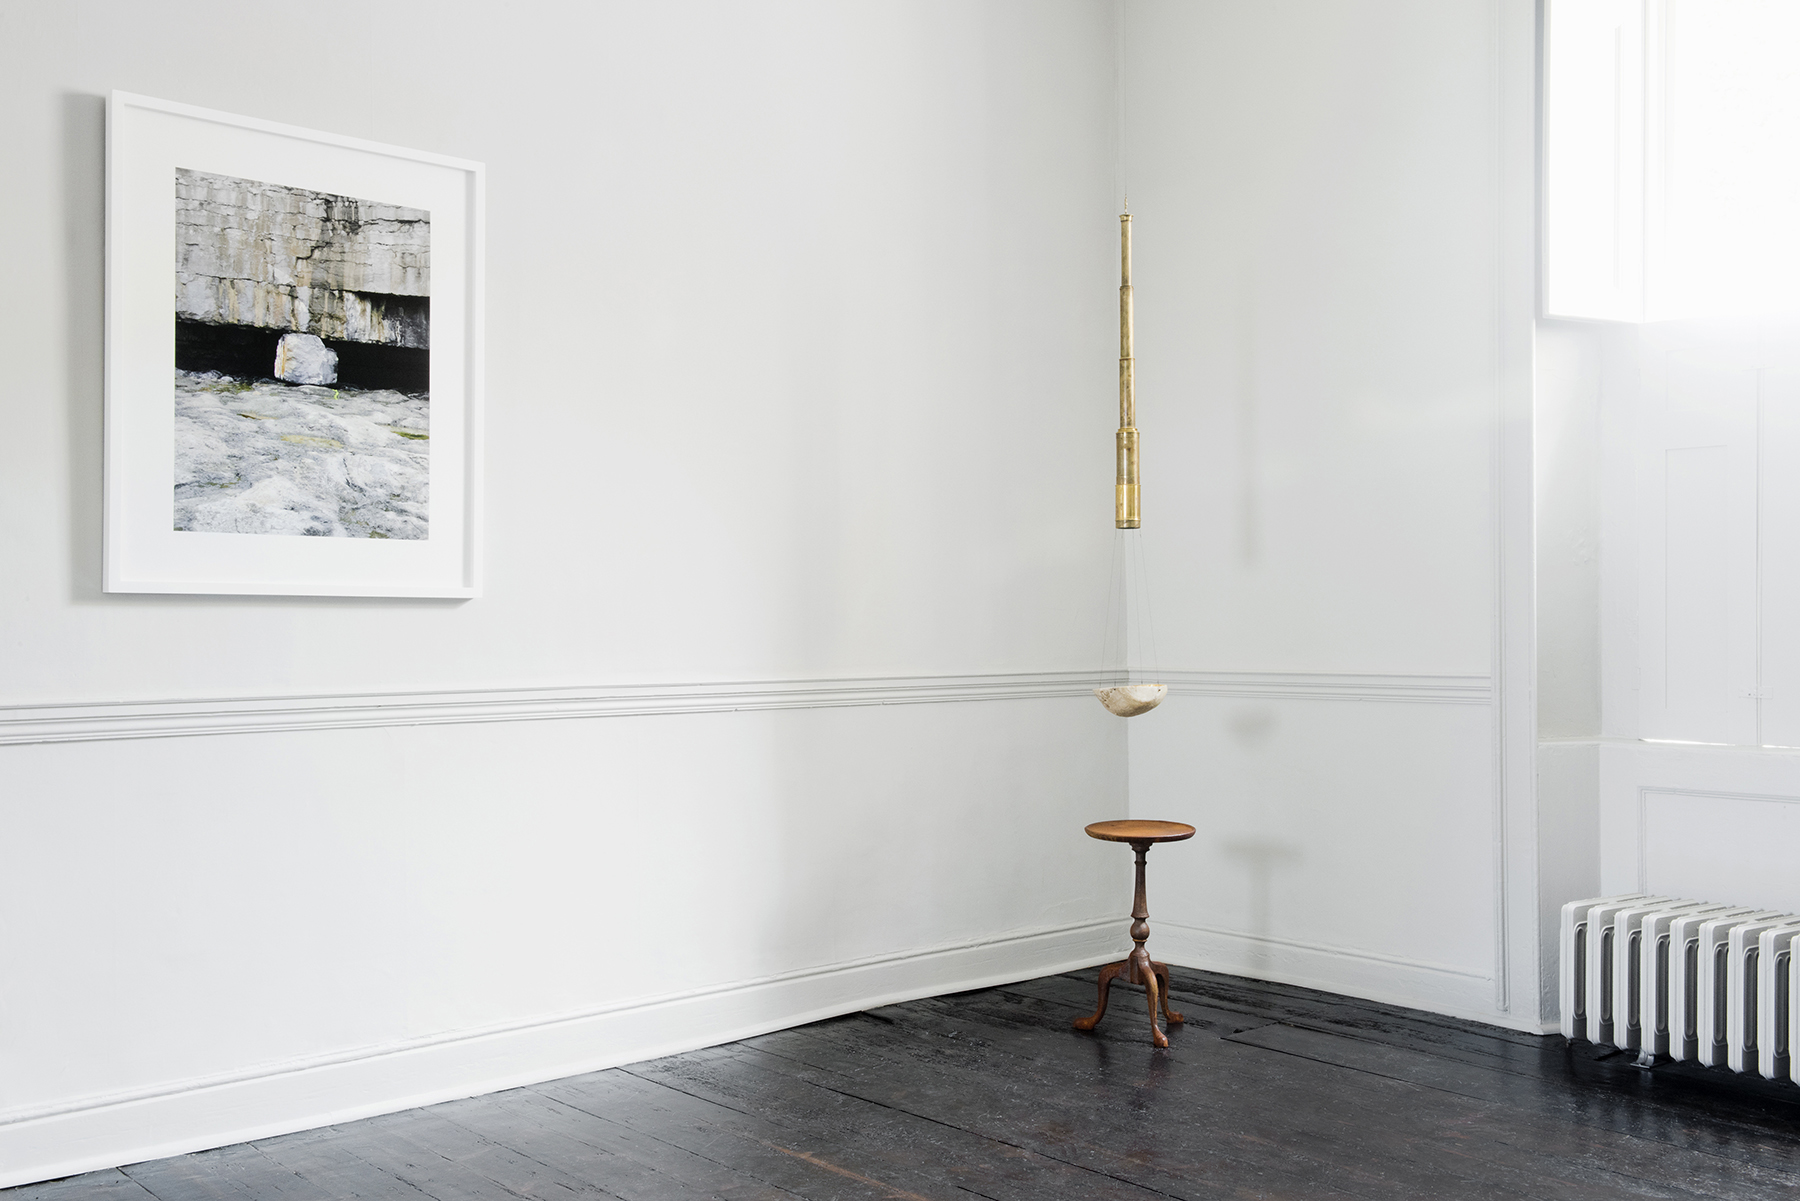 Dorothy Cross  –  Boulder ,   2014, Archival pigment print, 92.3 x 74.8 cm framed  Dorothy Cross  –    Table Telescope , 2016, Cast iron table 49 x 28 cm, antique brass telescope 5 x 91 cm, gilded human skull, meteorite